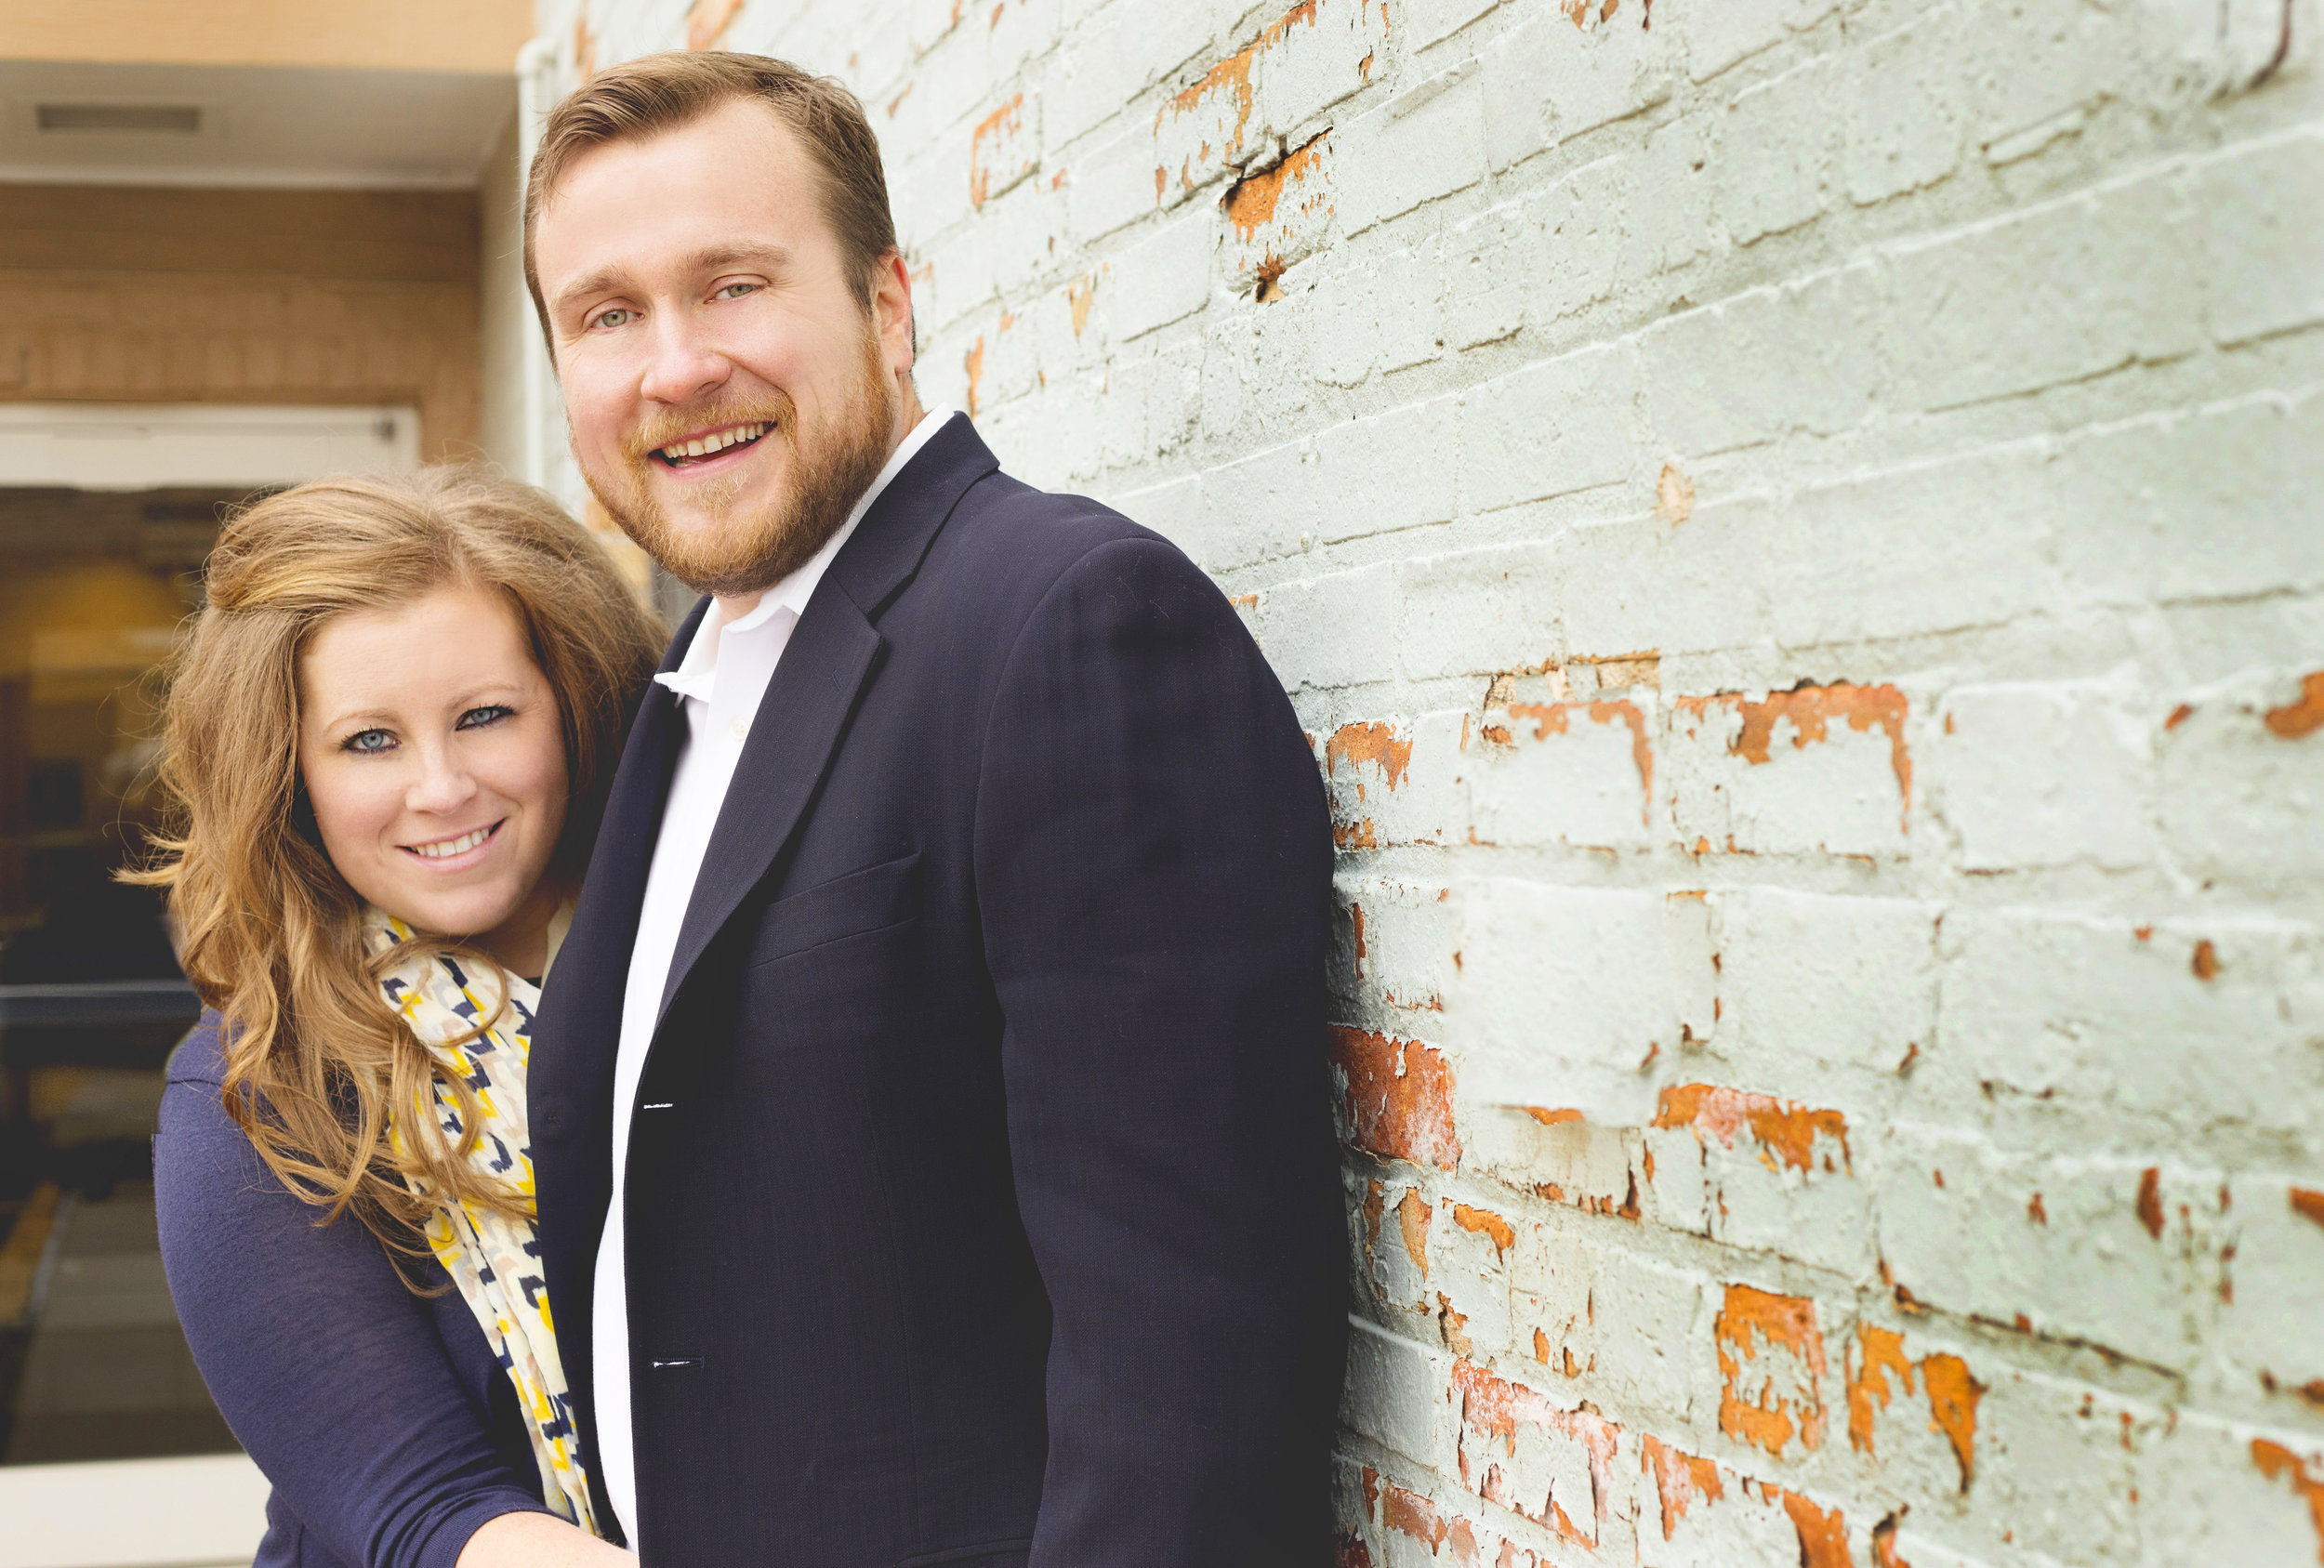 Copy of Copy of Engagement Photography